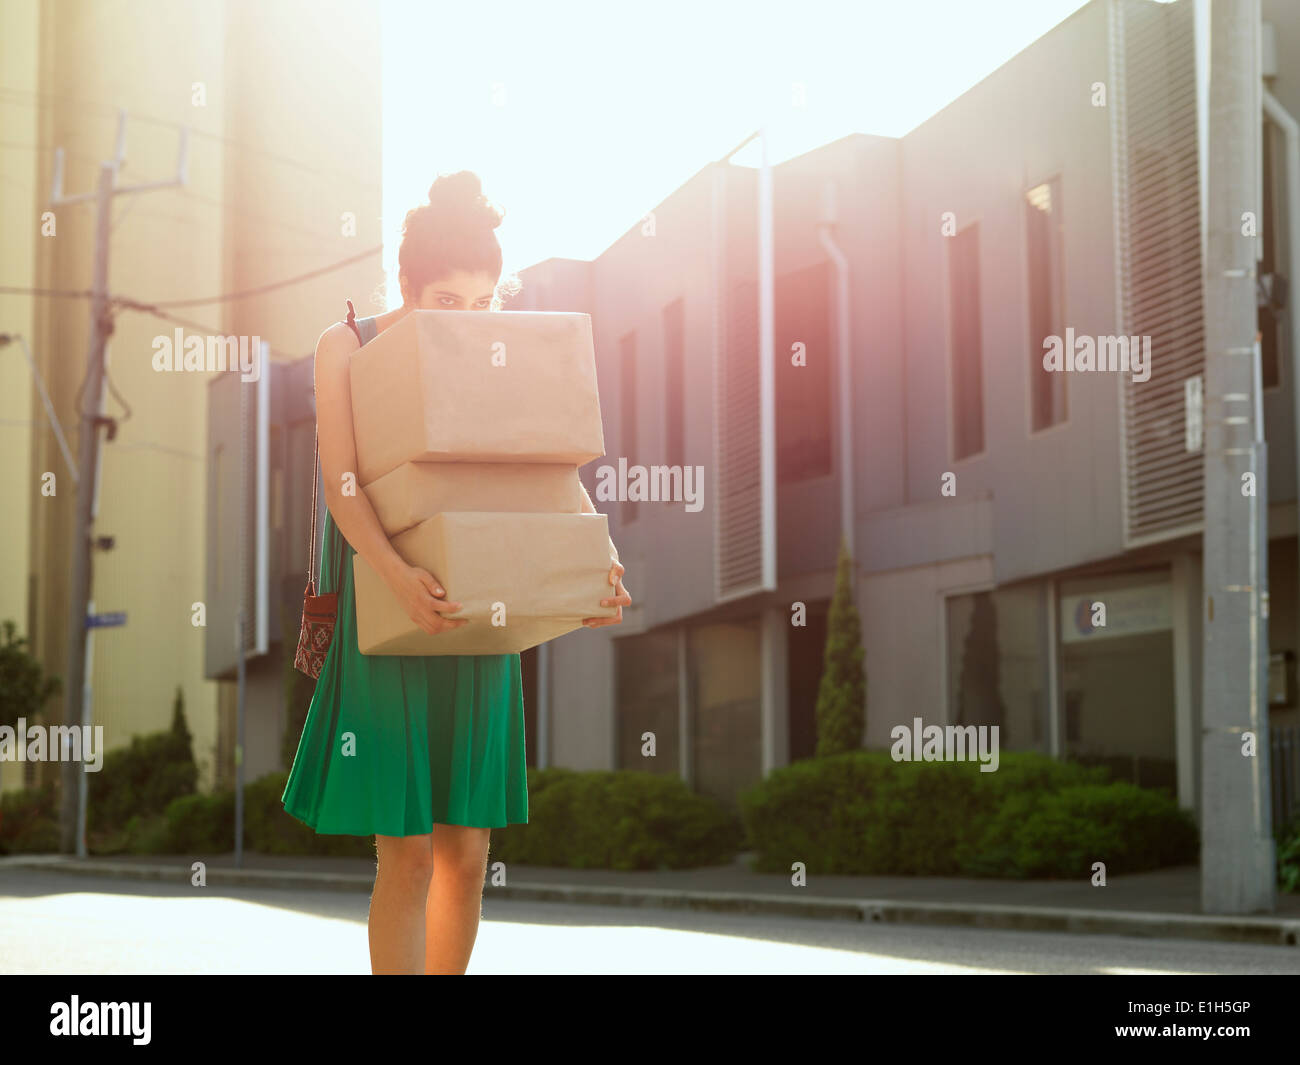 Young woman carrying and peeking over stack of boxes - Stock Image